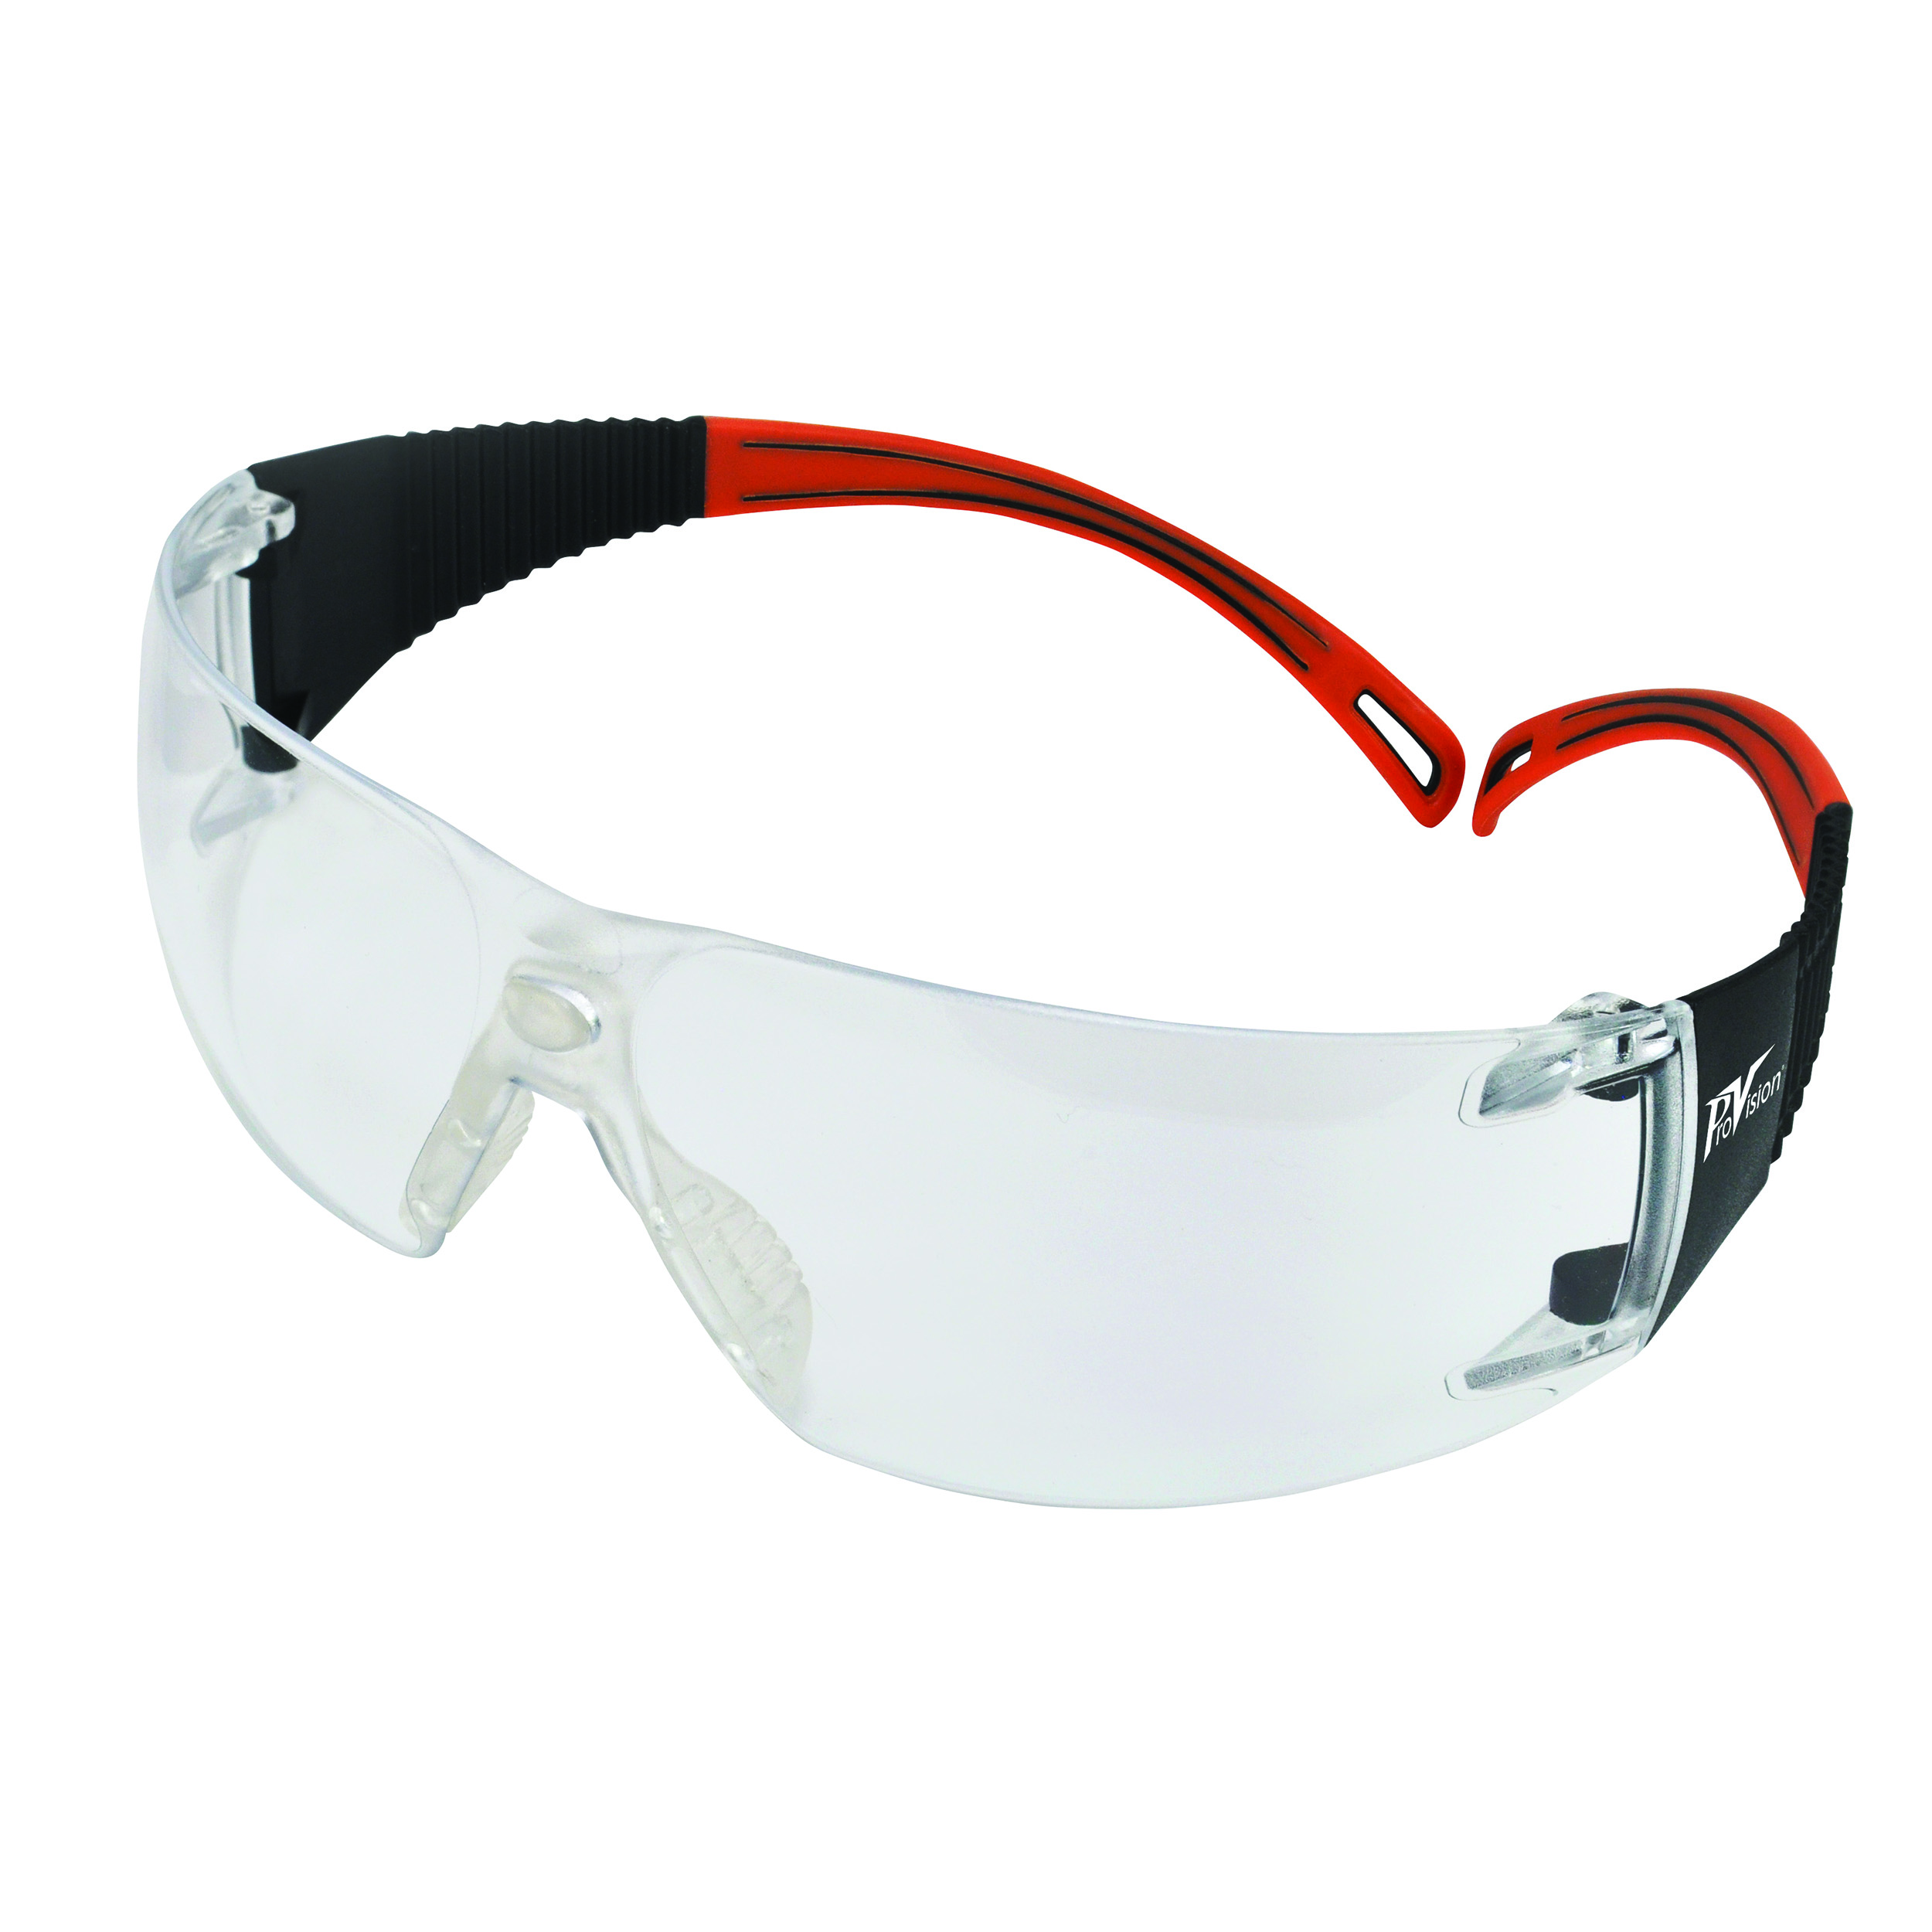 9200126 ProVision Flexiwrap Eyewear Black Frame, Orange Tips, Clear Lens, 3609OC